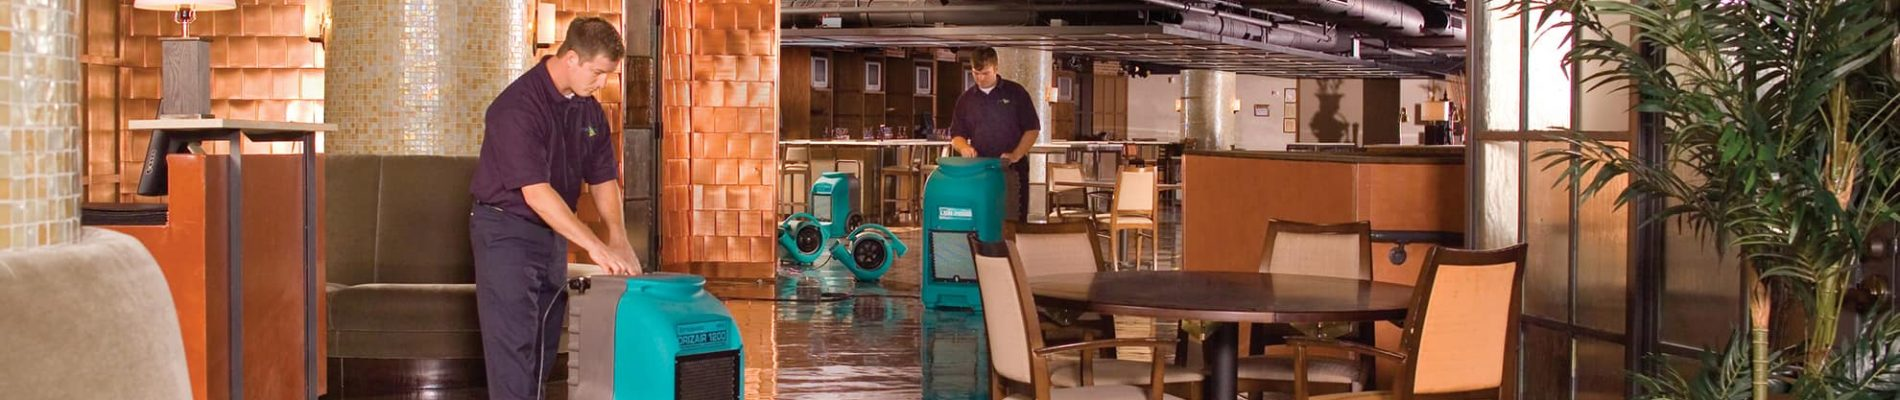 water-damage-restoration-smfireandwater-restoration-denver